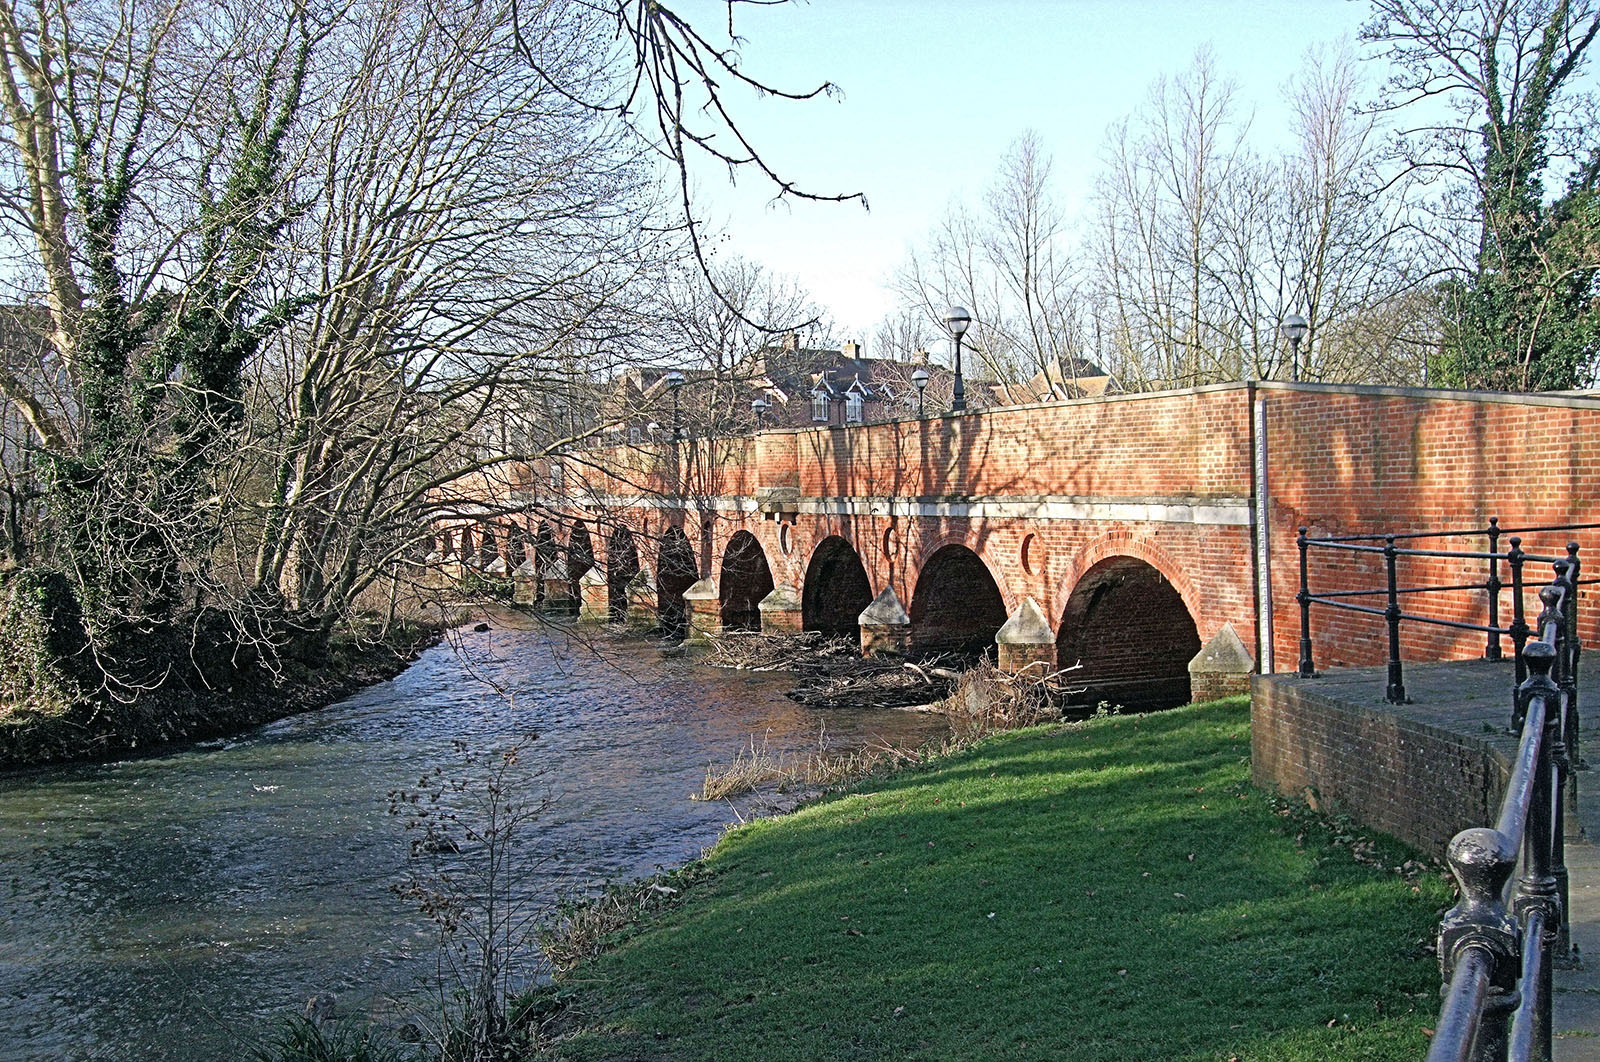 Leatherhead Town Bridge Over The River Mole.